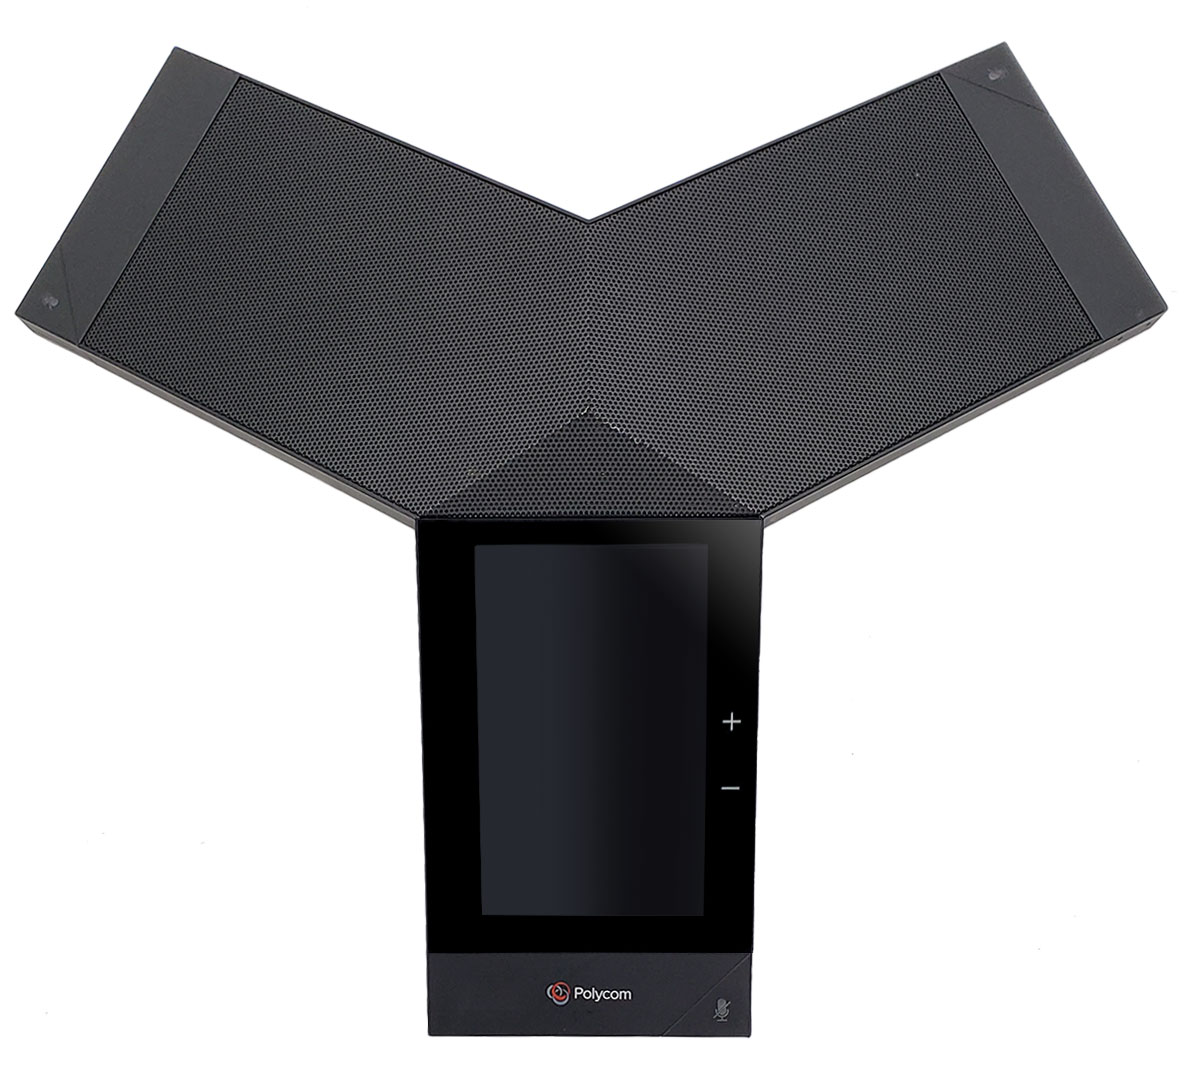 Polycom Trio 8500 Skype for Business (2200-66700-019)